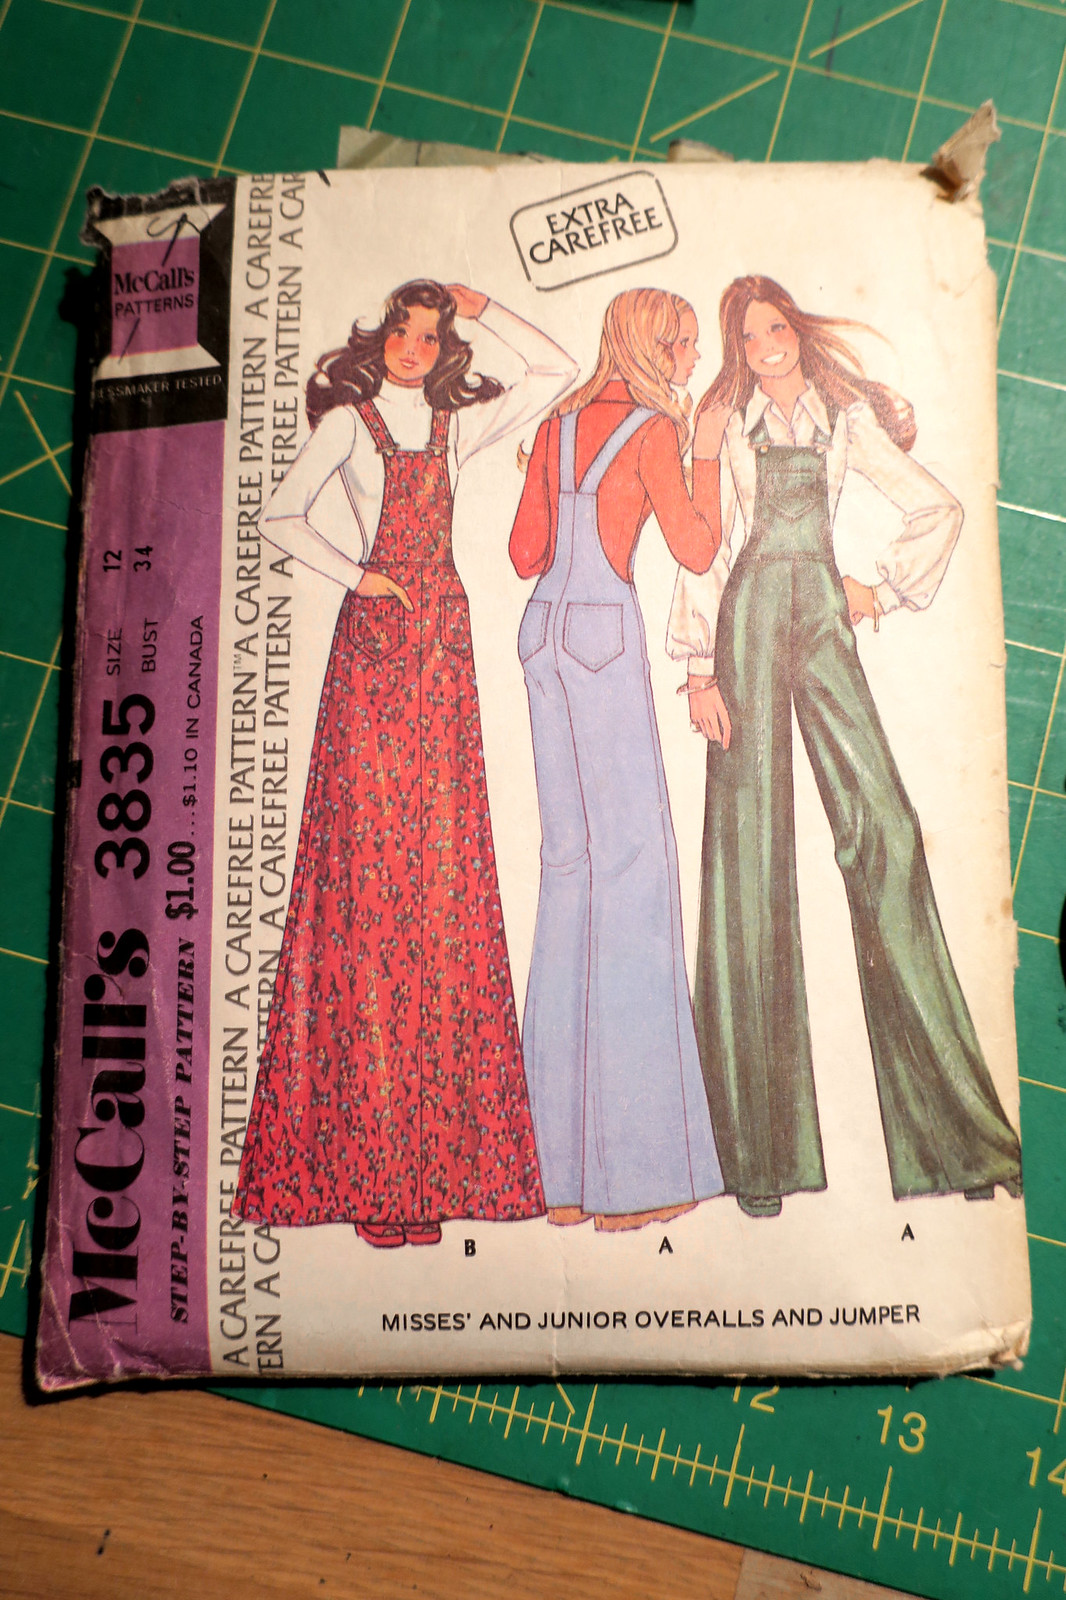 McCall's 3835 Vintage Overalls and Overall dress pattern